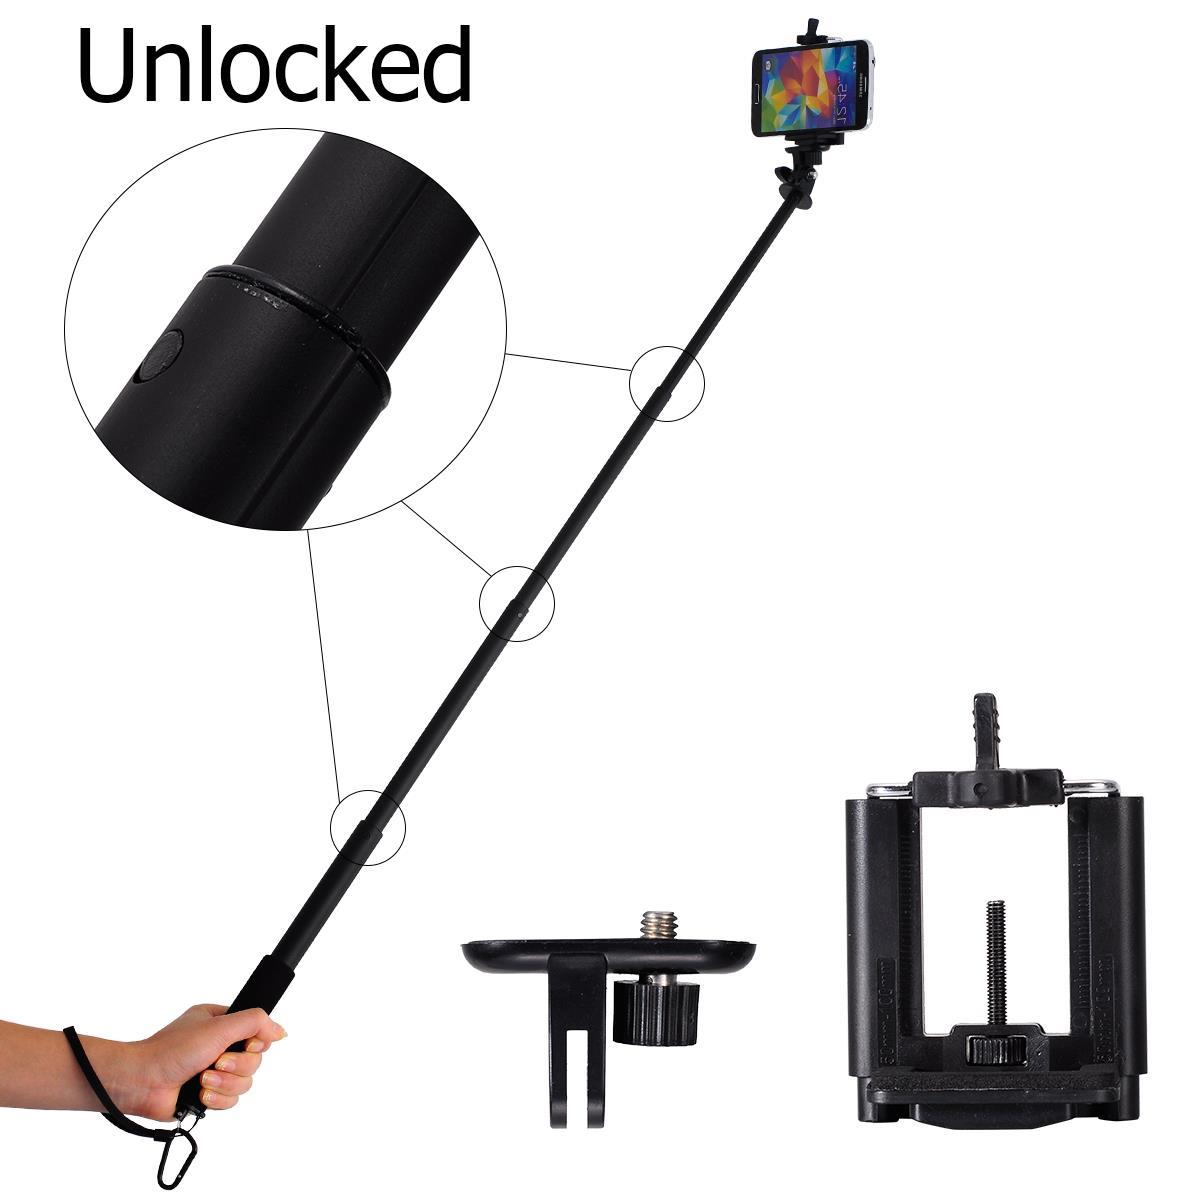 Xcsource-Monopod-Phone-Stick-Support-Pole-bluetooth-stick-extendable-tripod-for-camera-XC201-2